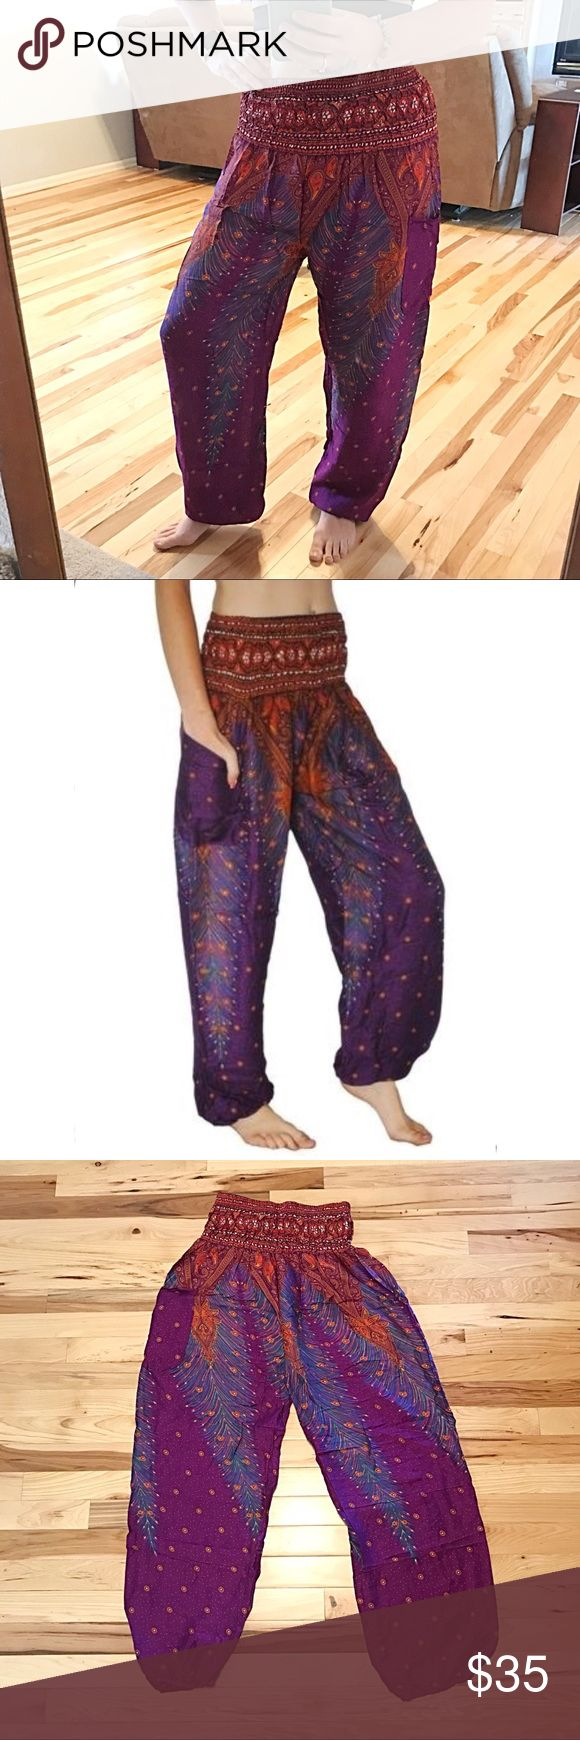 Hippie Boho Harem Pants Purple Festival Yoga Hippie Boho Harem Pants Purple Burnt Orange Festival Yoga Wise leg Pants. Wide elastic band. Waist unstretched is 12 inches stretched is 16 inches inseam is 27 inches and length from top of waist to bottom hem measures 42 inches. One size fits most. Fits Small Medium Large and XL. New in package. Pants Wide Leg